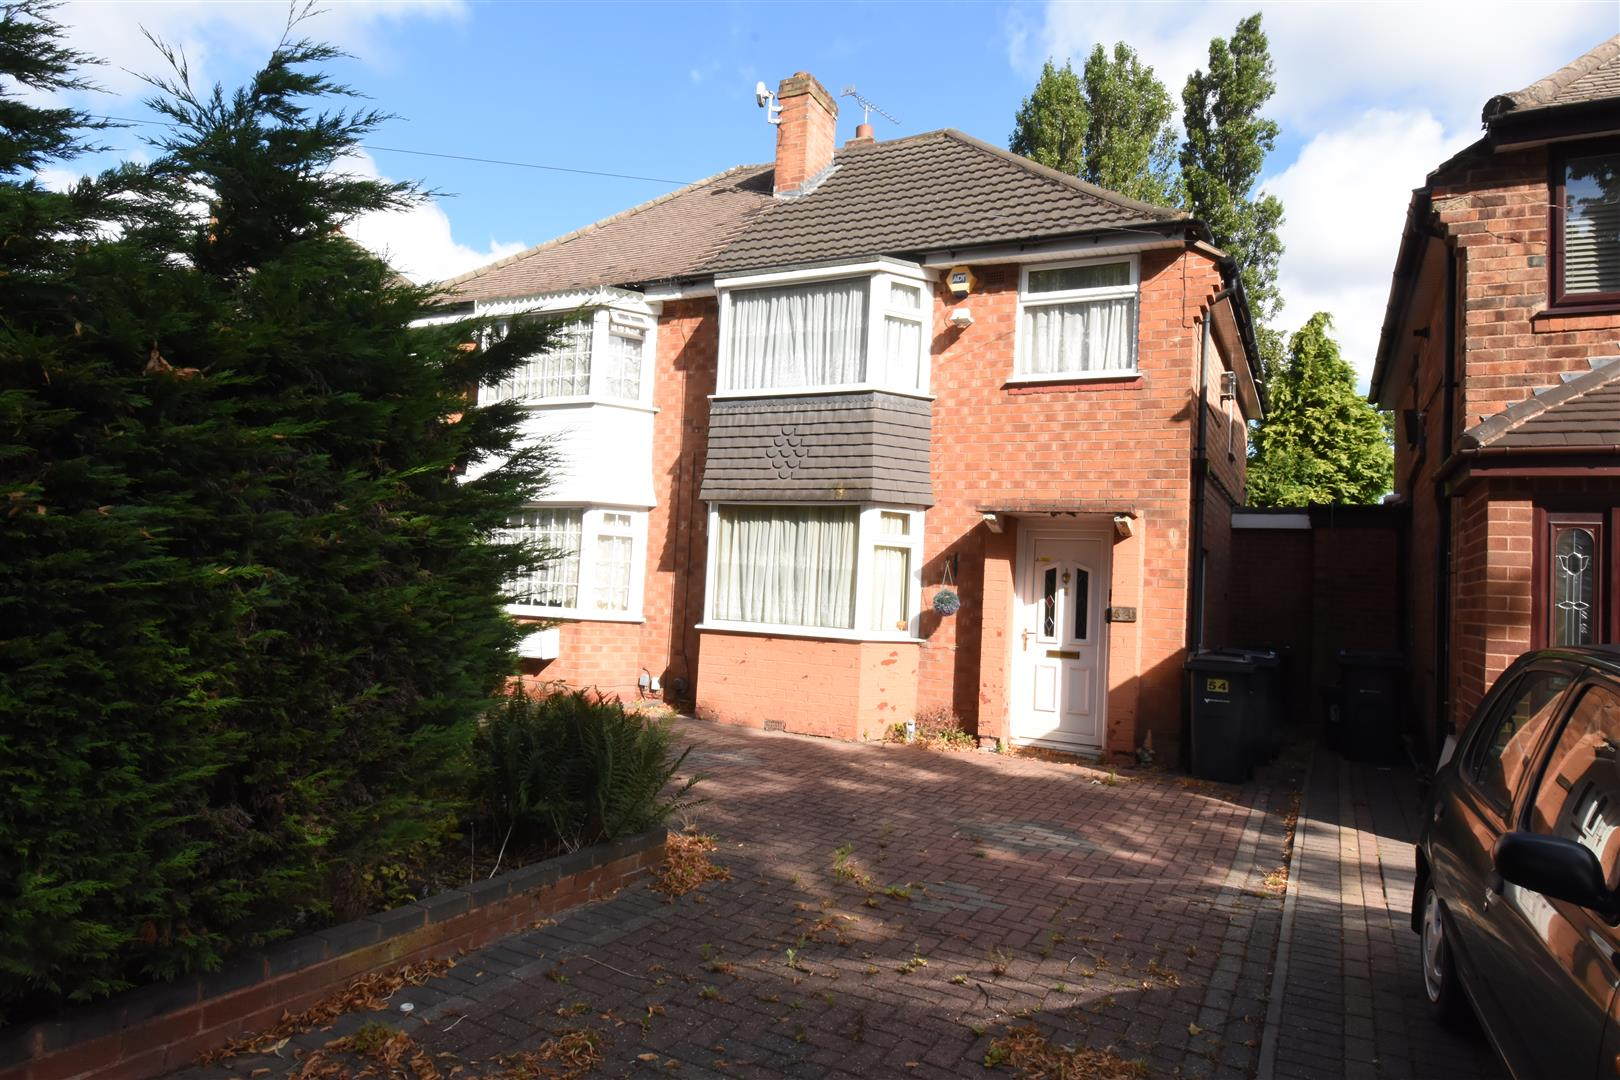 3 bed house for sale in Hodge Hill Road, Birmingham, B34